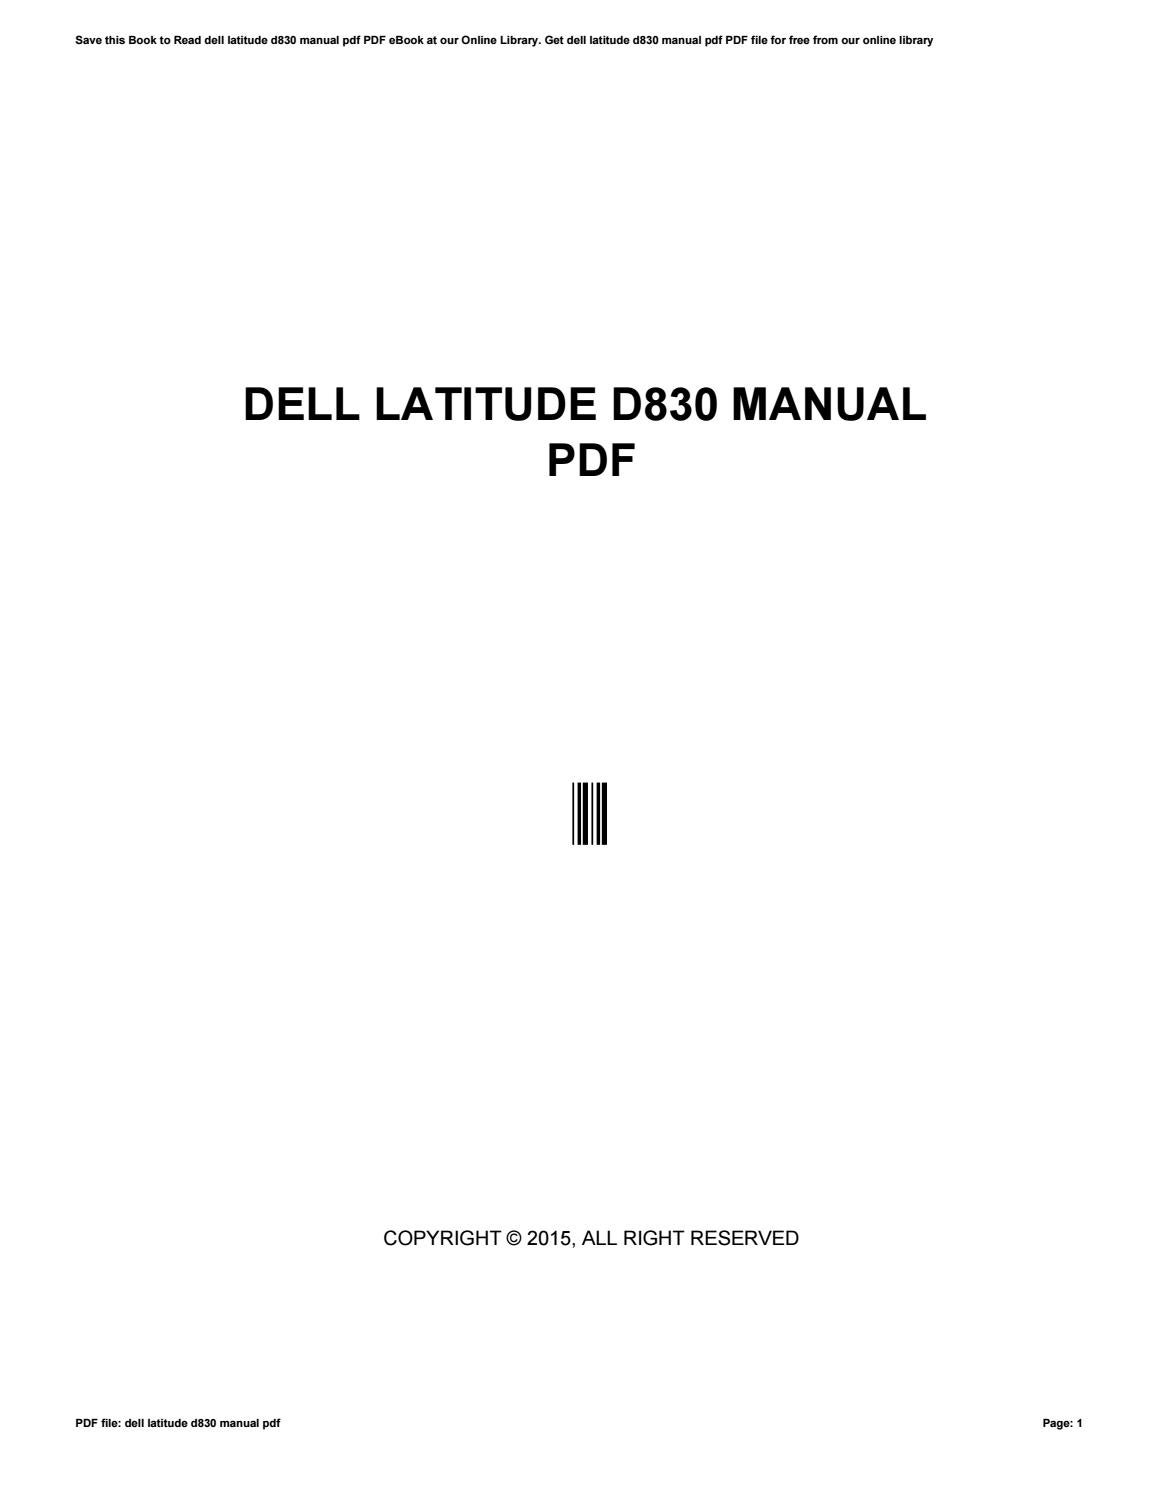 ... Array - jeep manual contents ebook rh jeep manual contents ebook  aldantest us